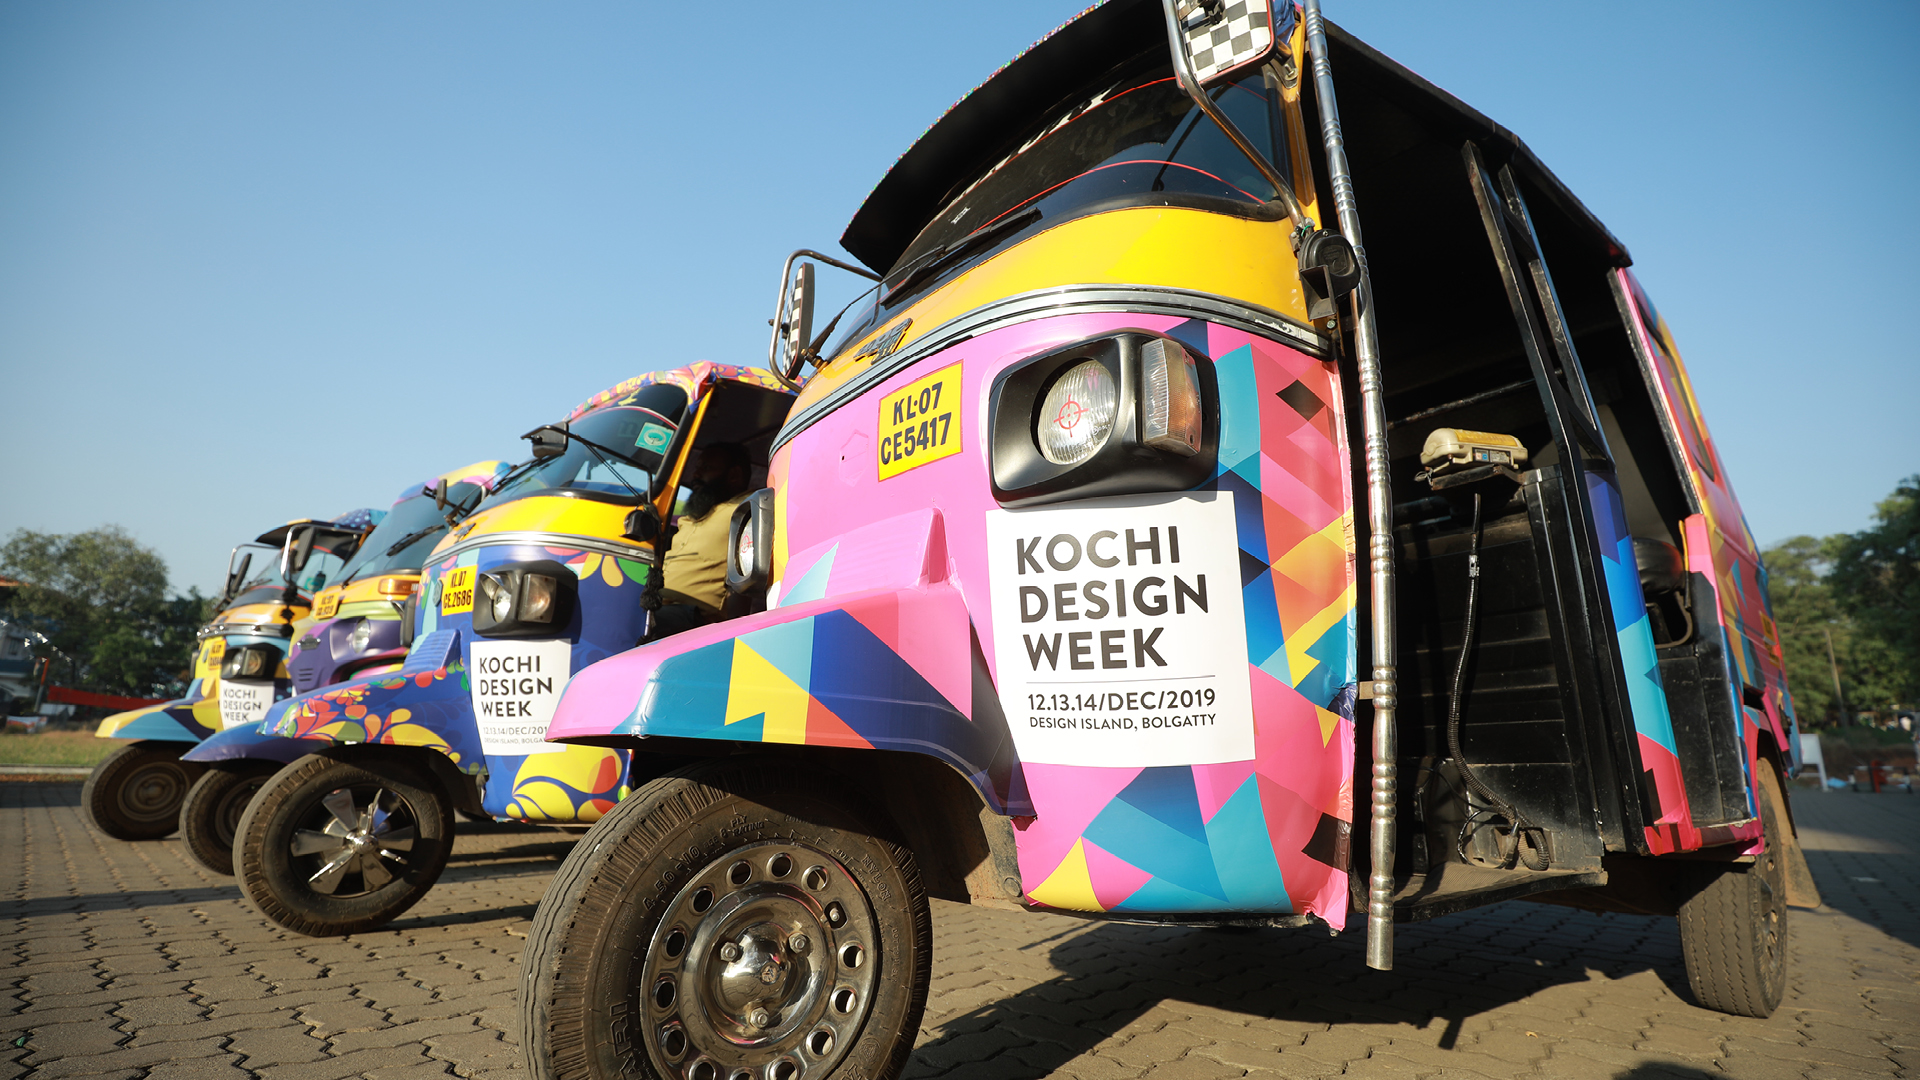 Kochi Design Week to host discussions on renewed development and revival in Kerala